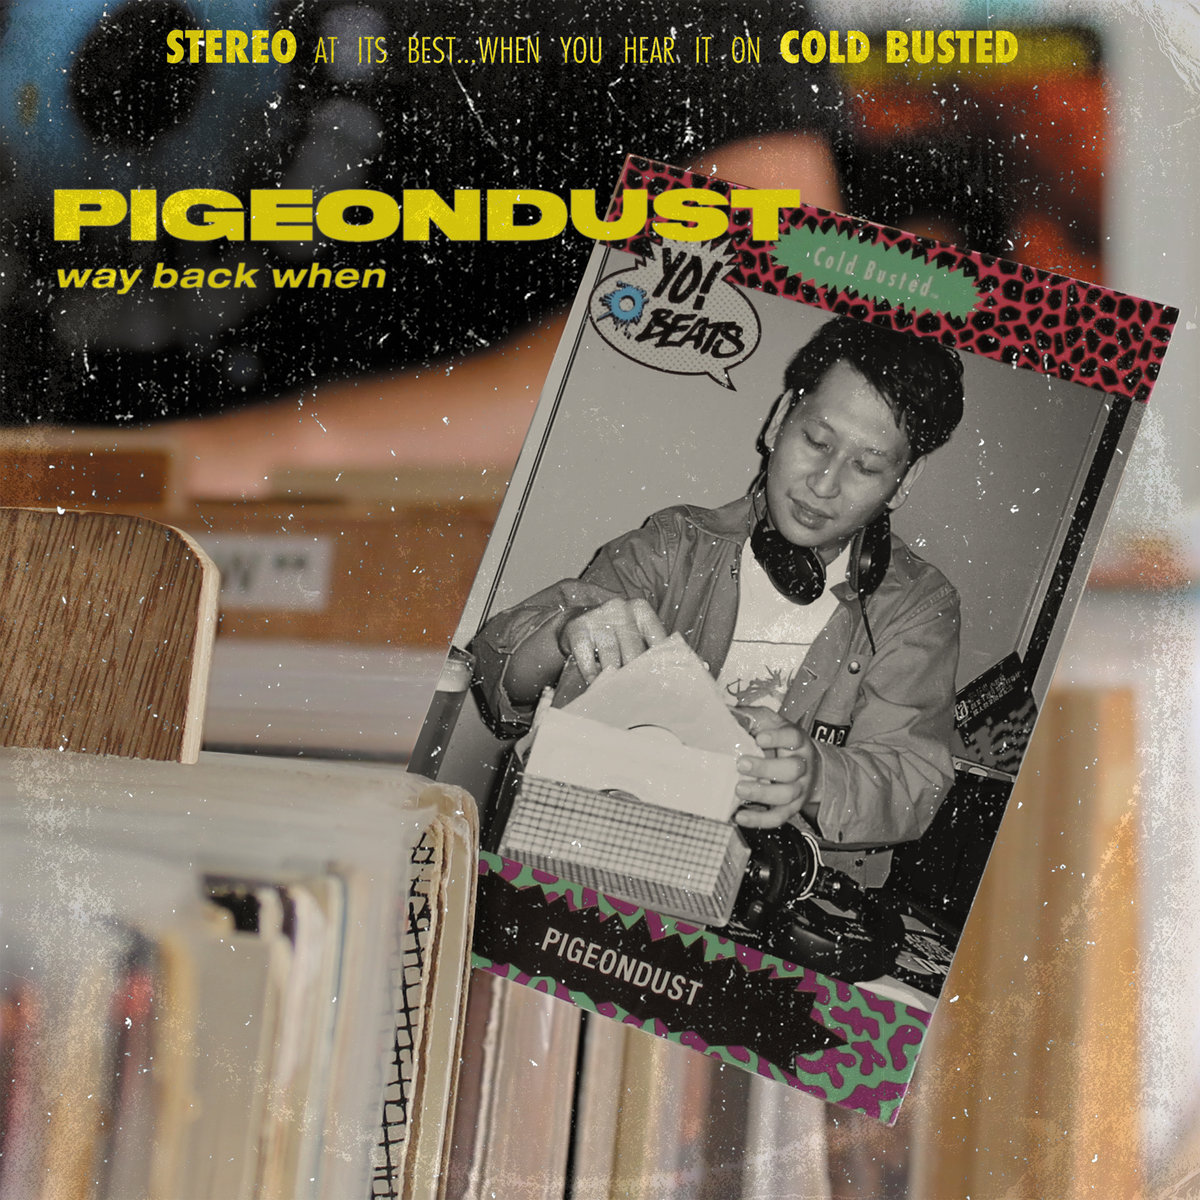 No Words #98: Pigeondust, Endangered Species, Vice Beats, Elaquent ft. Oddisee, The Audible Doctor